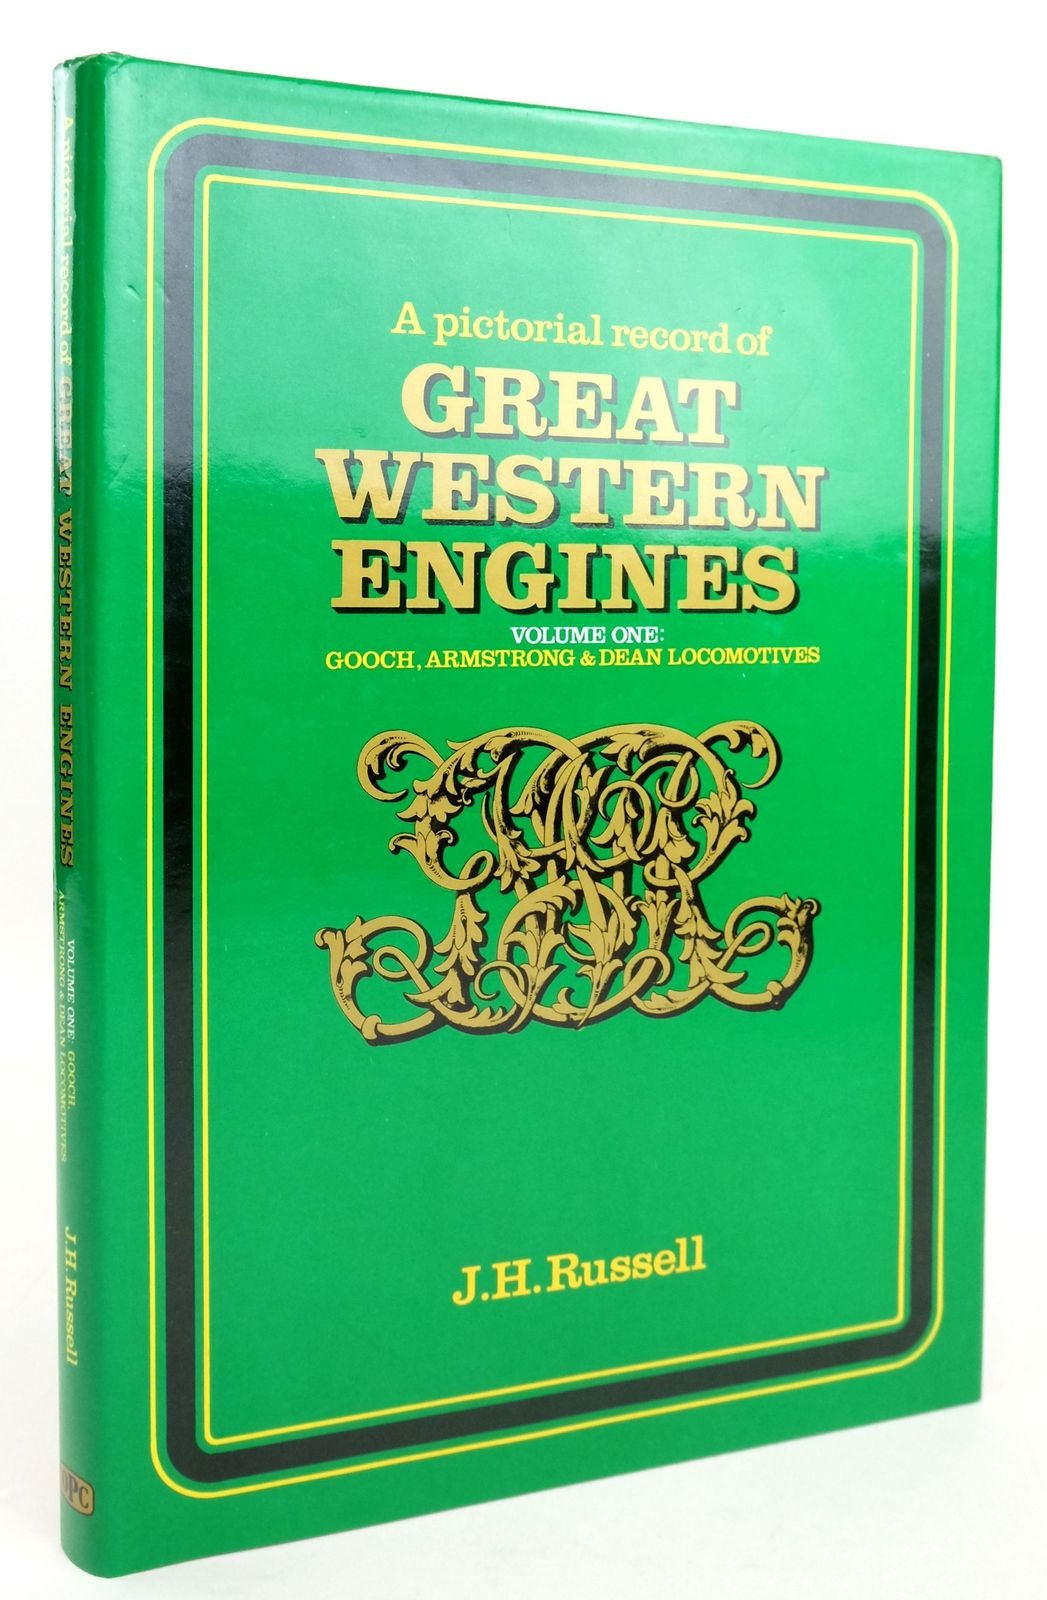 Photo of A PICTORIAL RECORD OF GREAT WESTERN ENGINES VOLUME ONE written by Russell, J.H. published by Oxford Publishing (STOCK CODE: 1820192)  for sale by Stella & Rose's Books